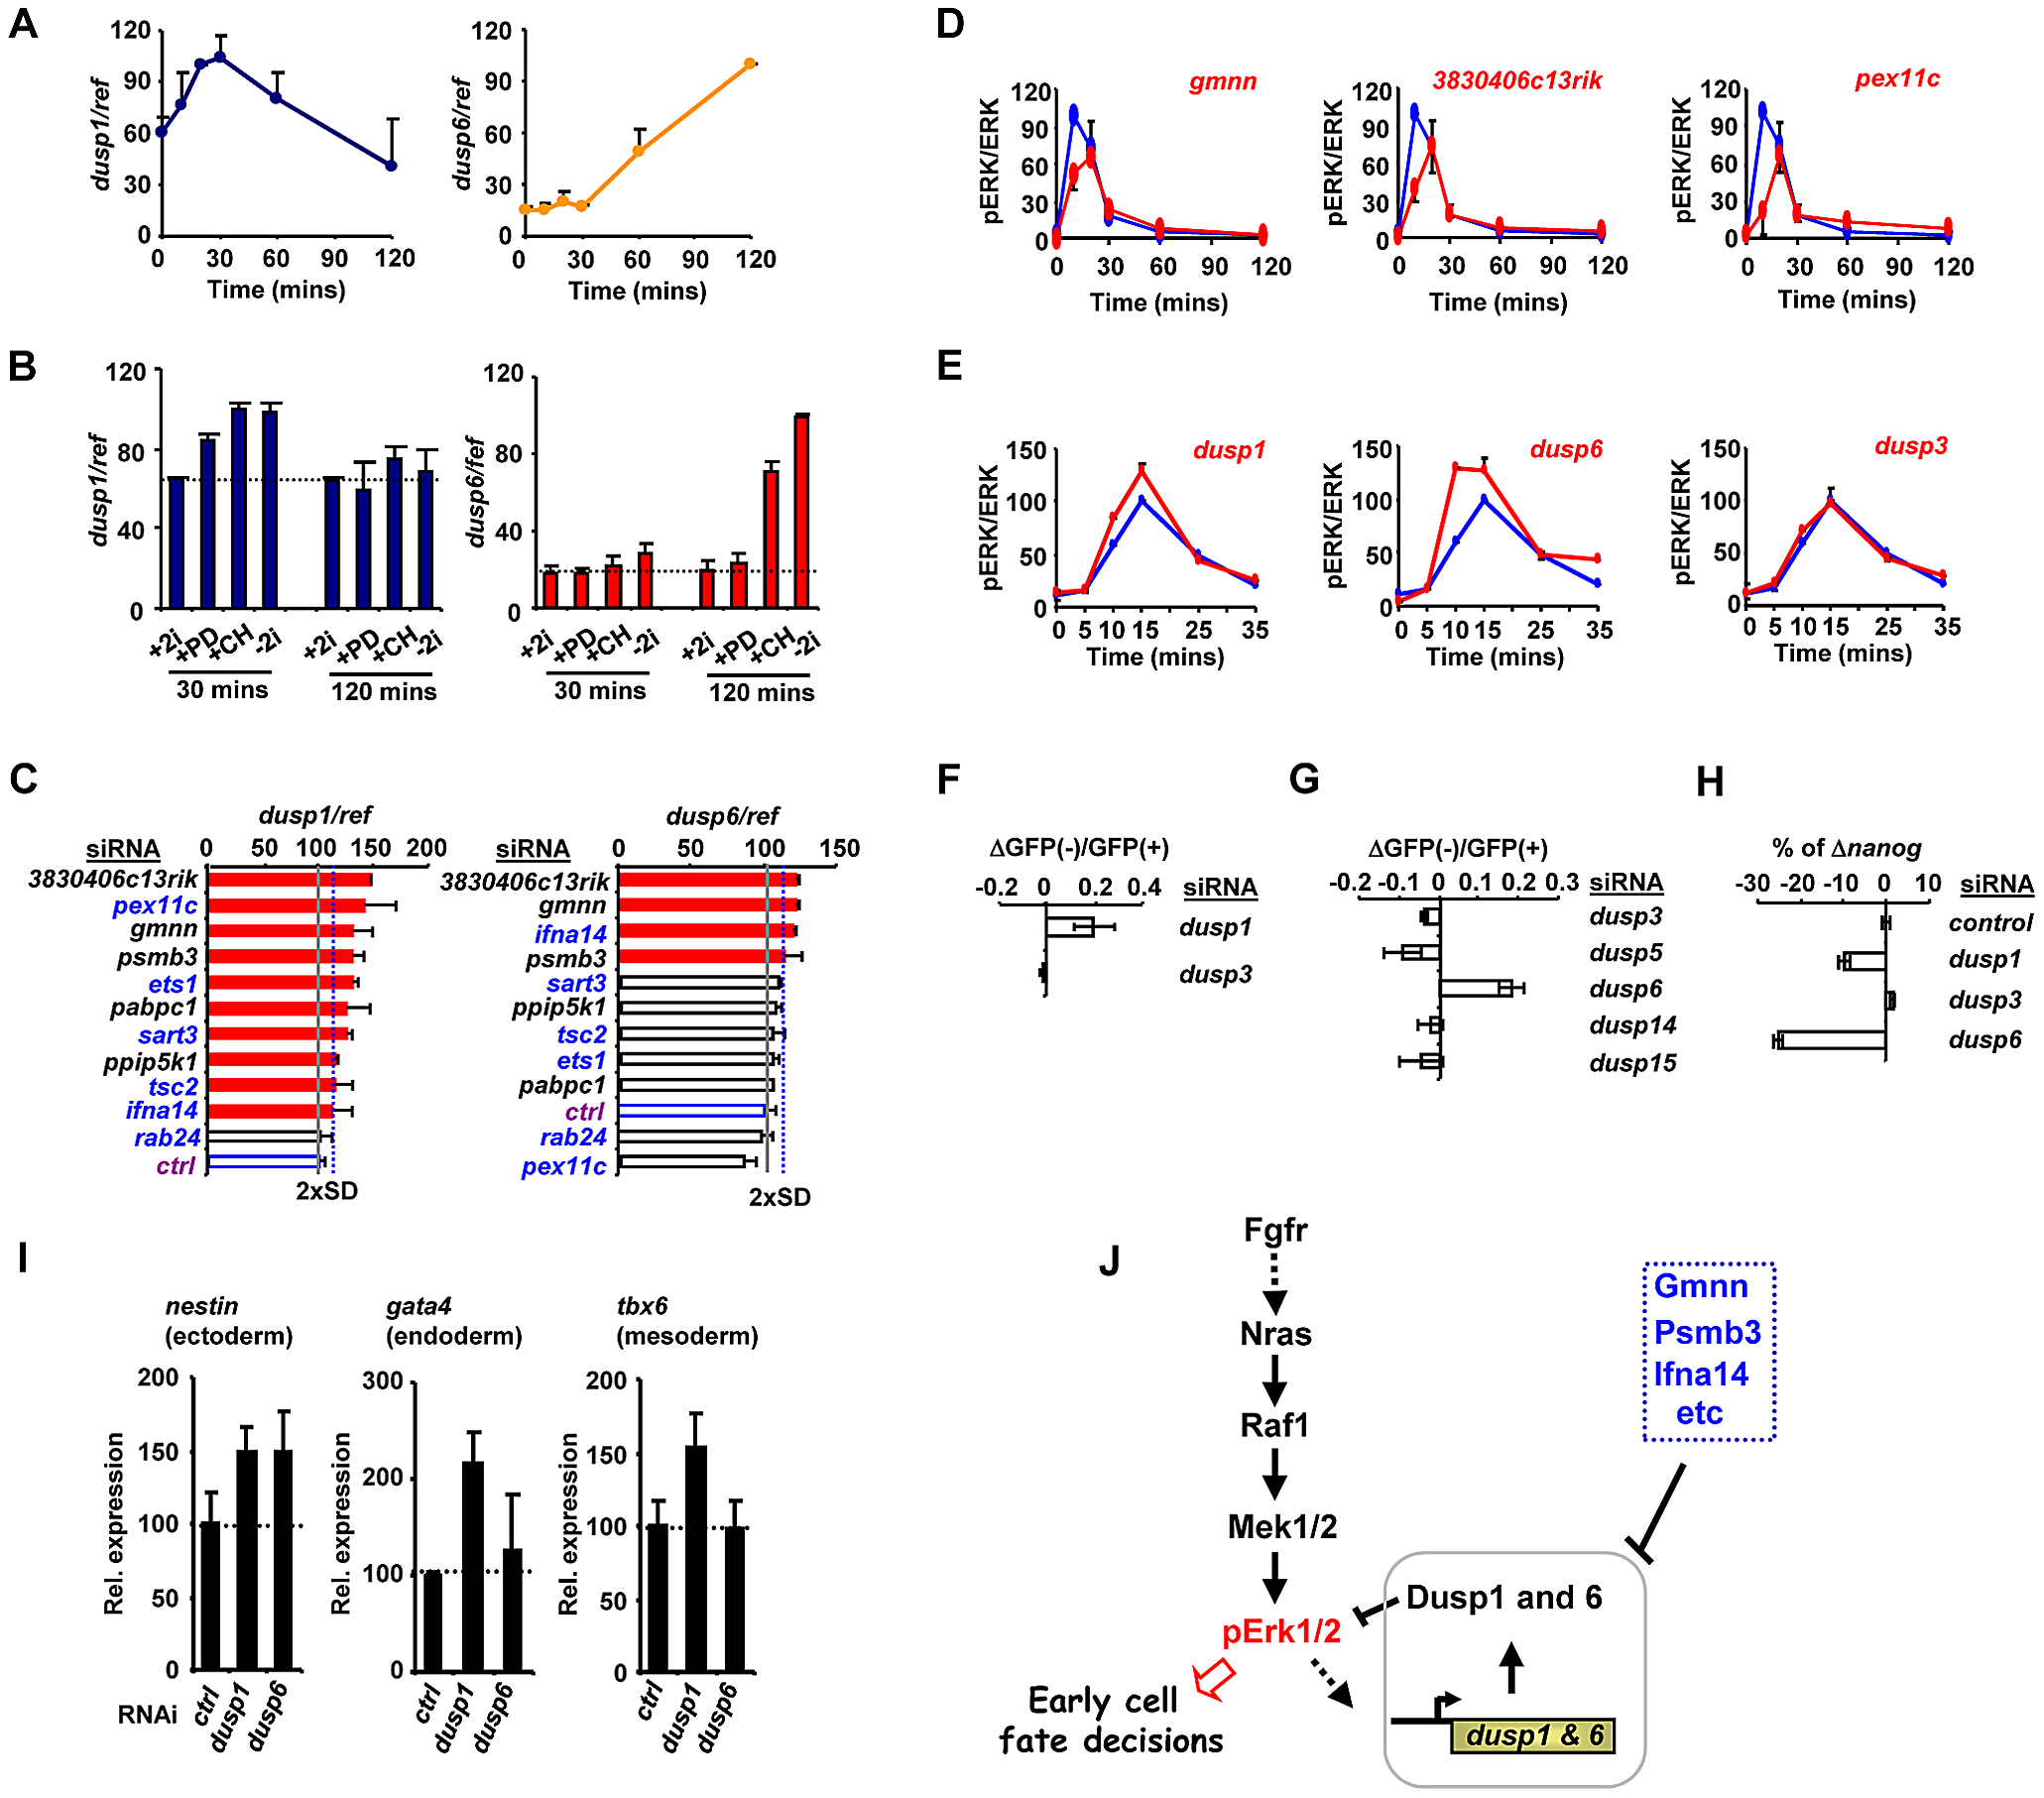 The regulation of Dusp1 and Dusp6 activity and ES cell differentiation.